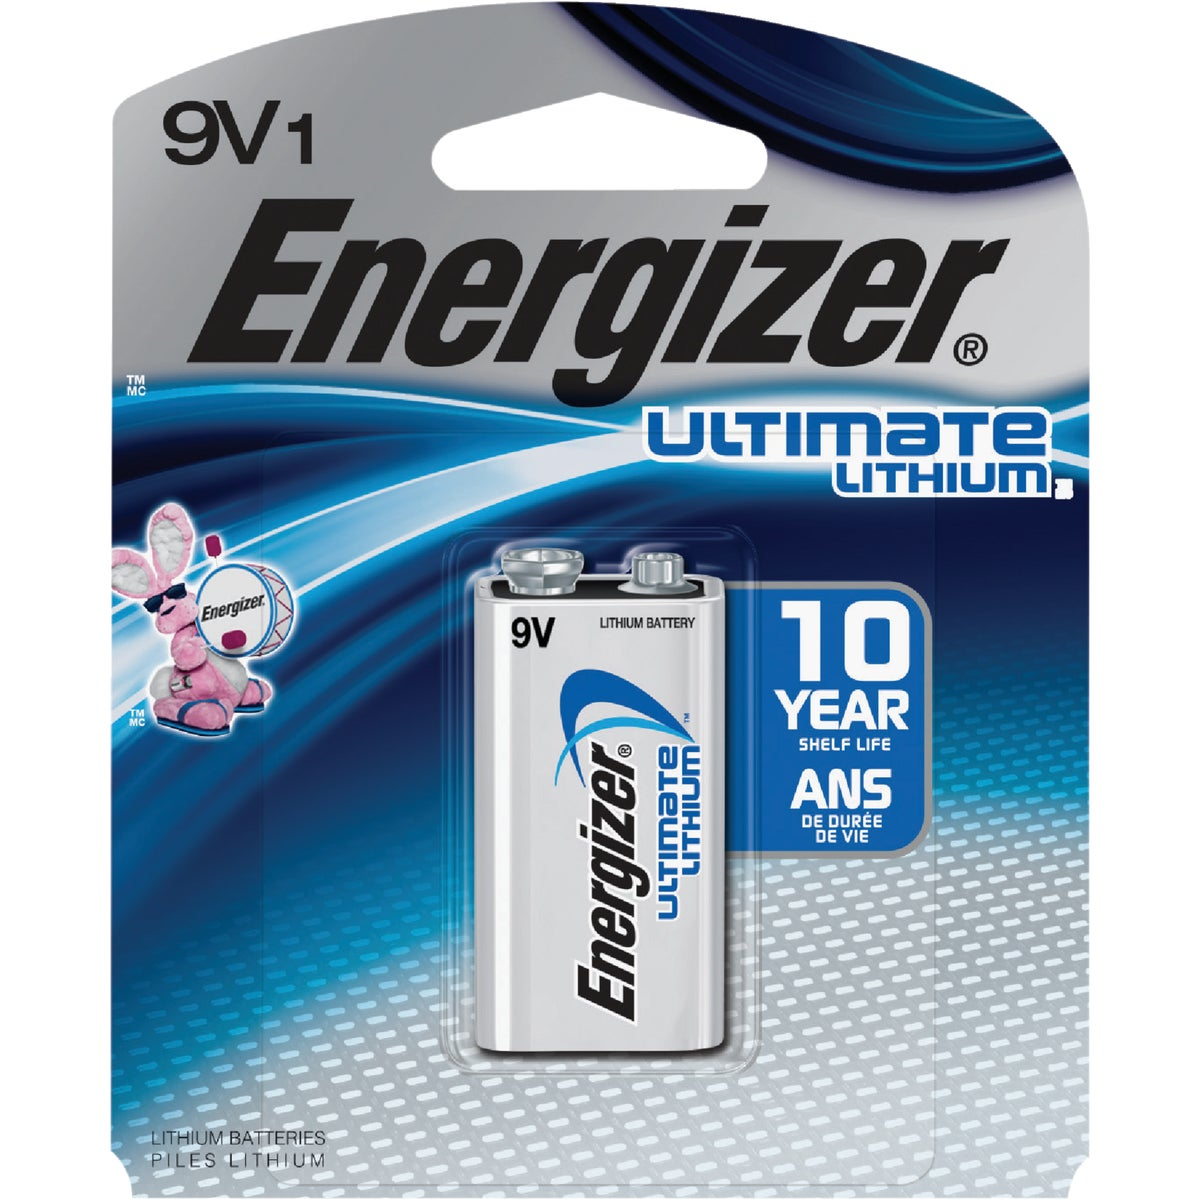 ADV LITHIUM 9V BATTERY - LA522SPB by Energizer